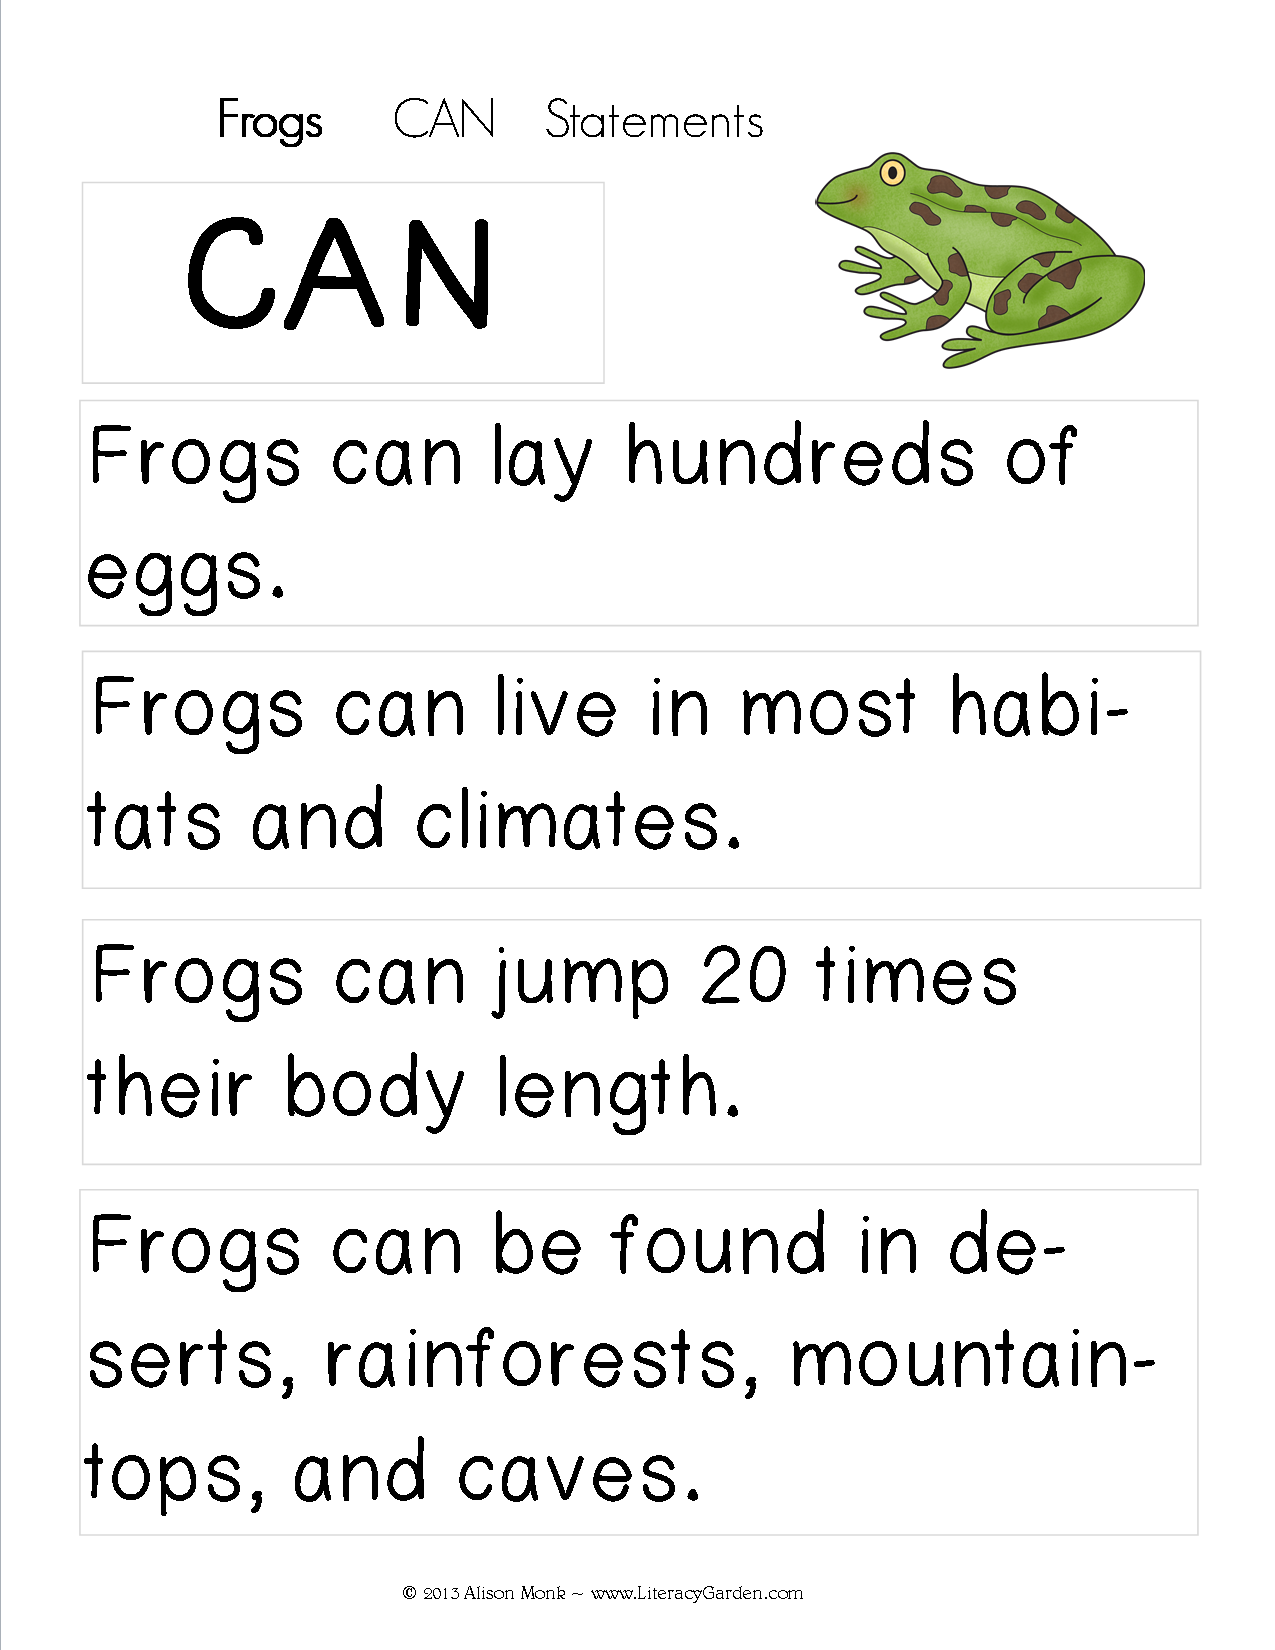 Frogscan